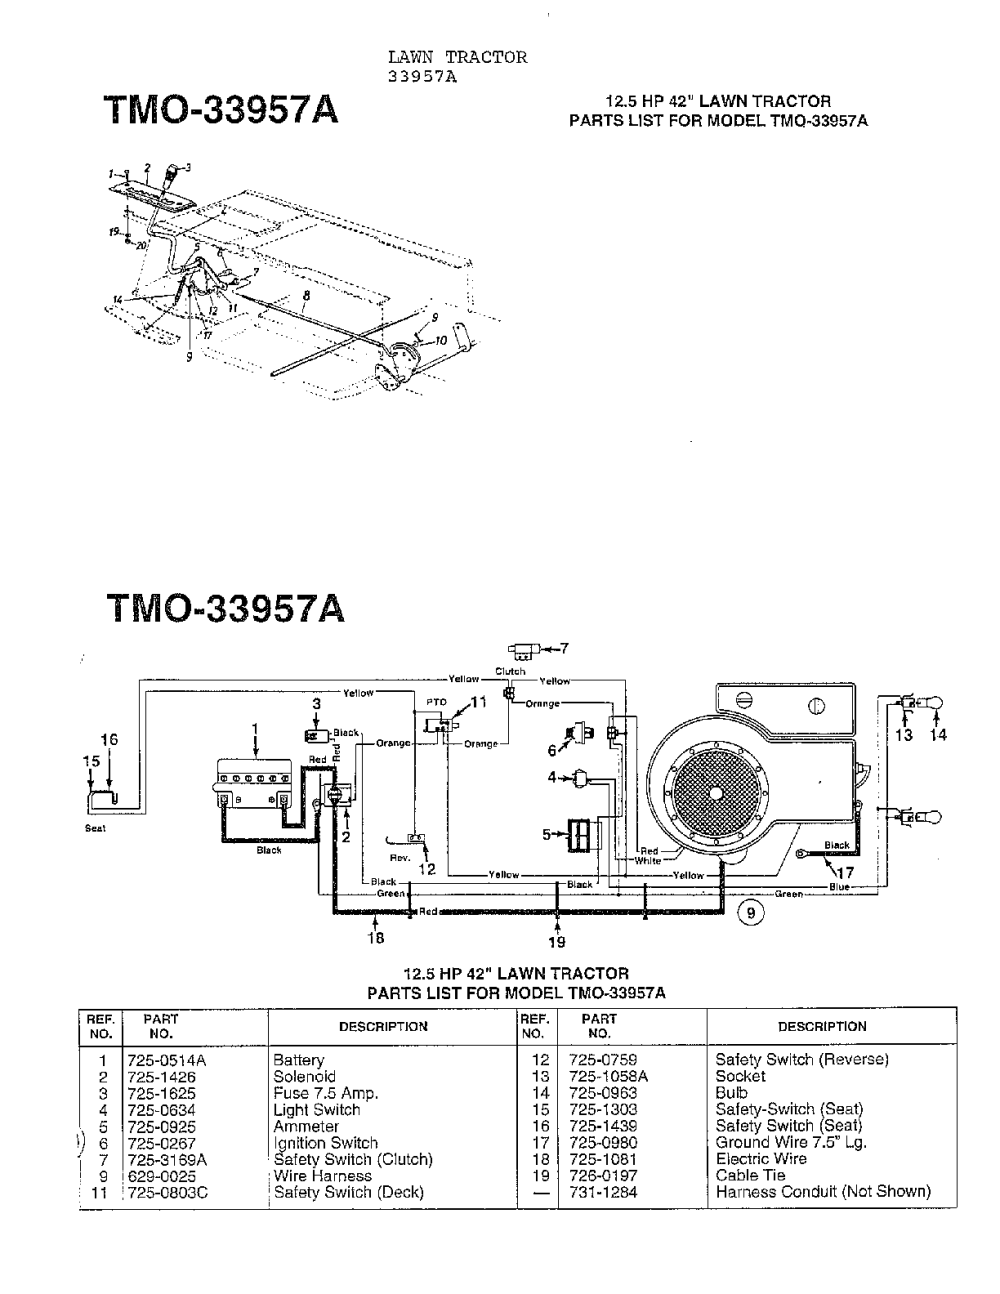 medium resolution of mtd 10 hp wiring diagram wiring library 10 hp tecumseh engine specs yardman 10 5 hp briggs and stratton wiring diagram